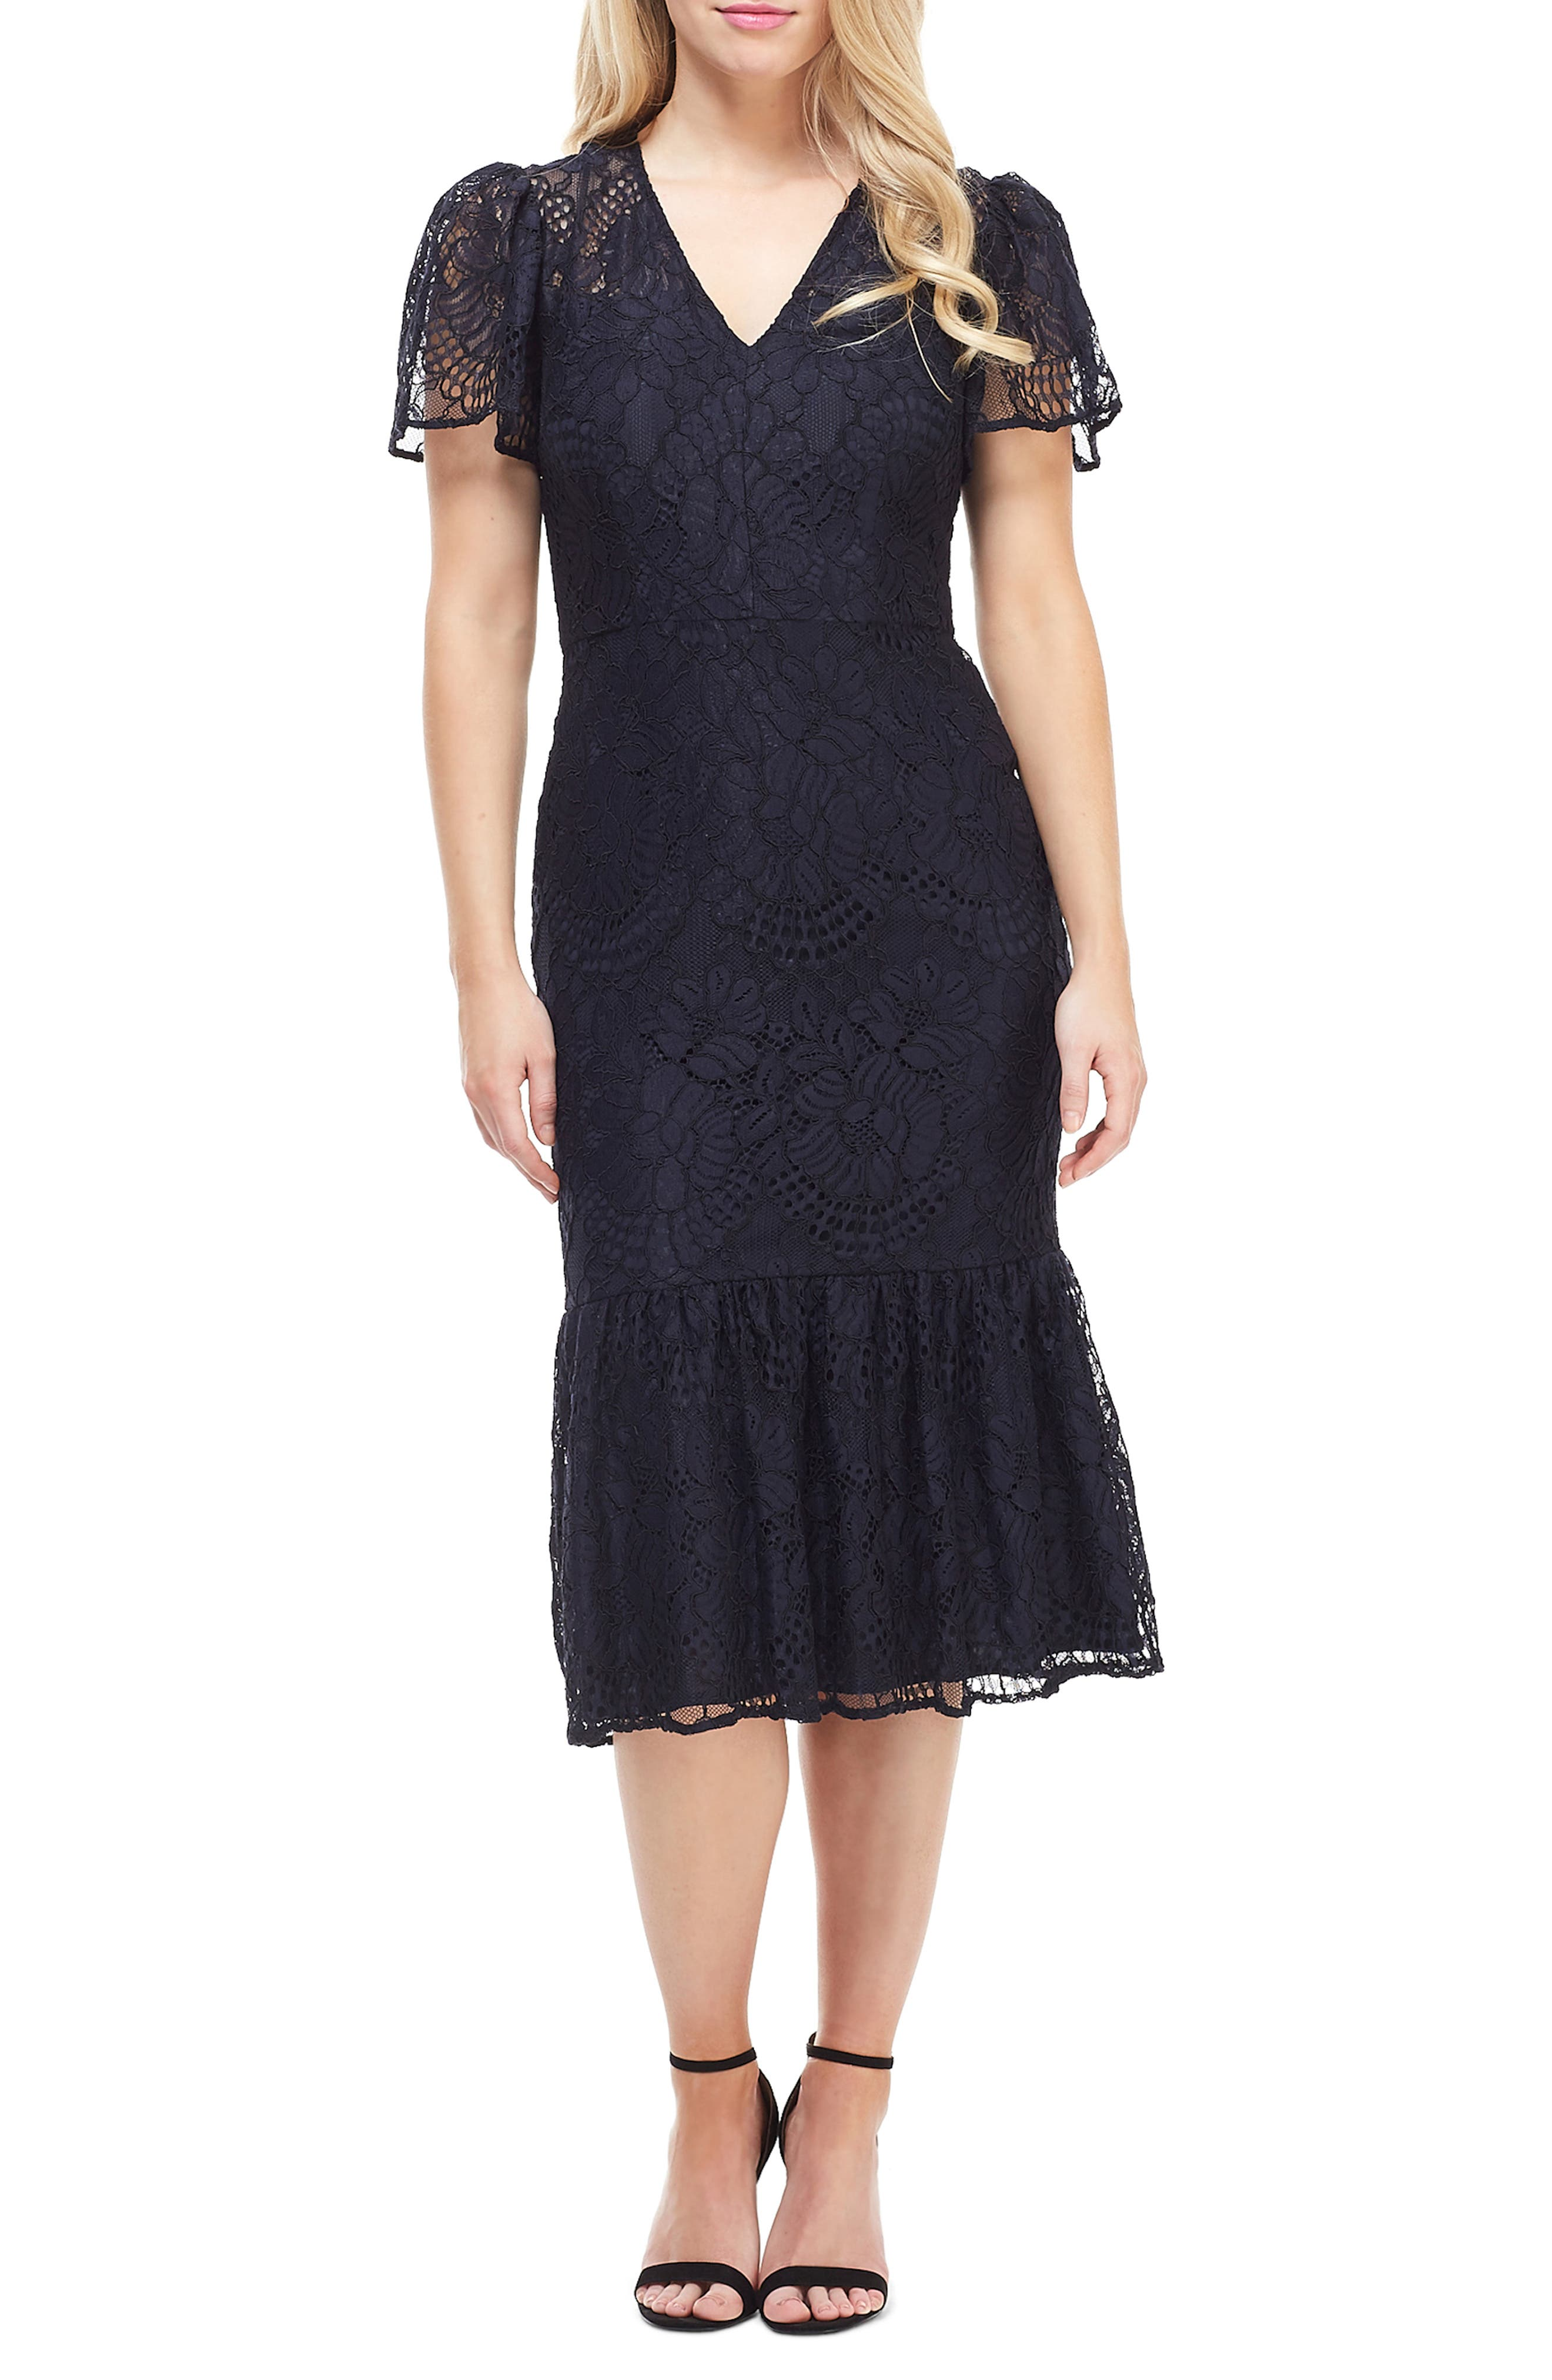 1920s, 1930s Mother of the Bride Groom Dresses Womens Maggy London Lace Ruffle Hem Dress $178.00 AT vintagedancer.com